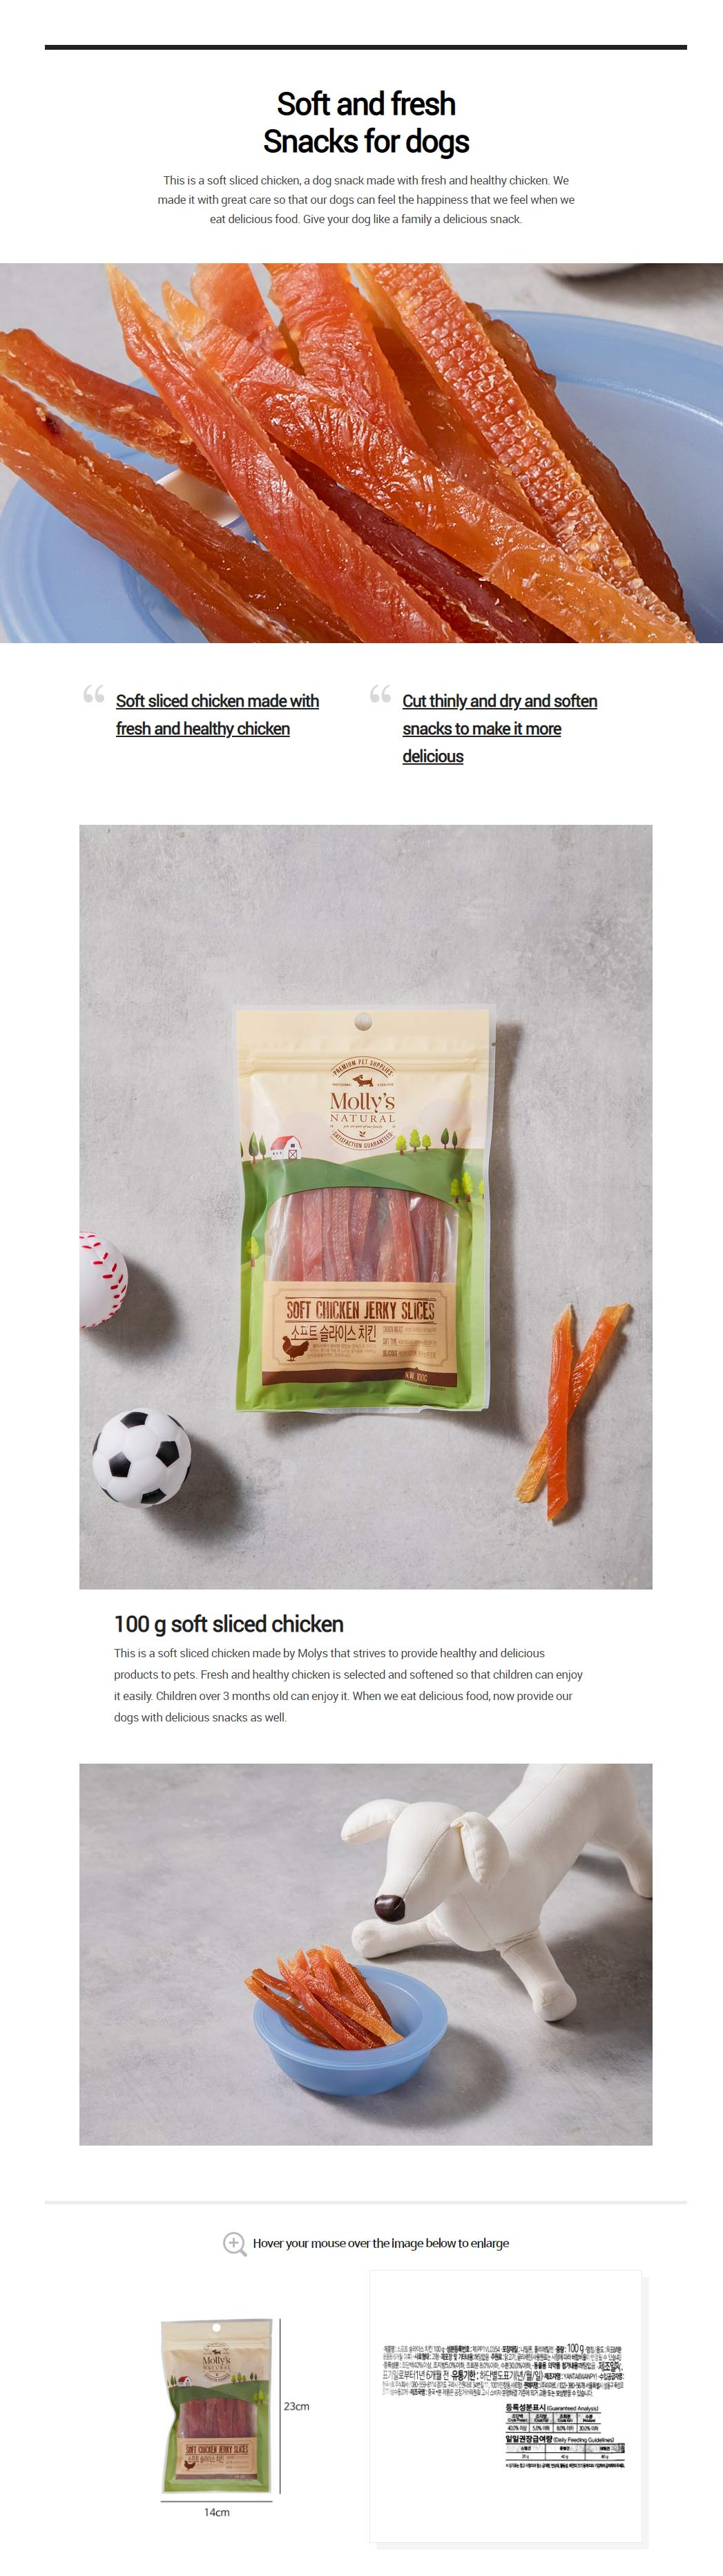 [Molly] Soft sliced chicken 100g